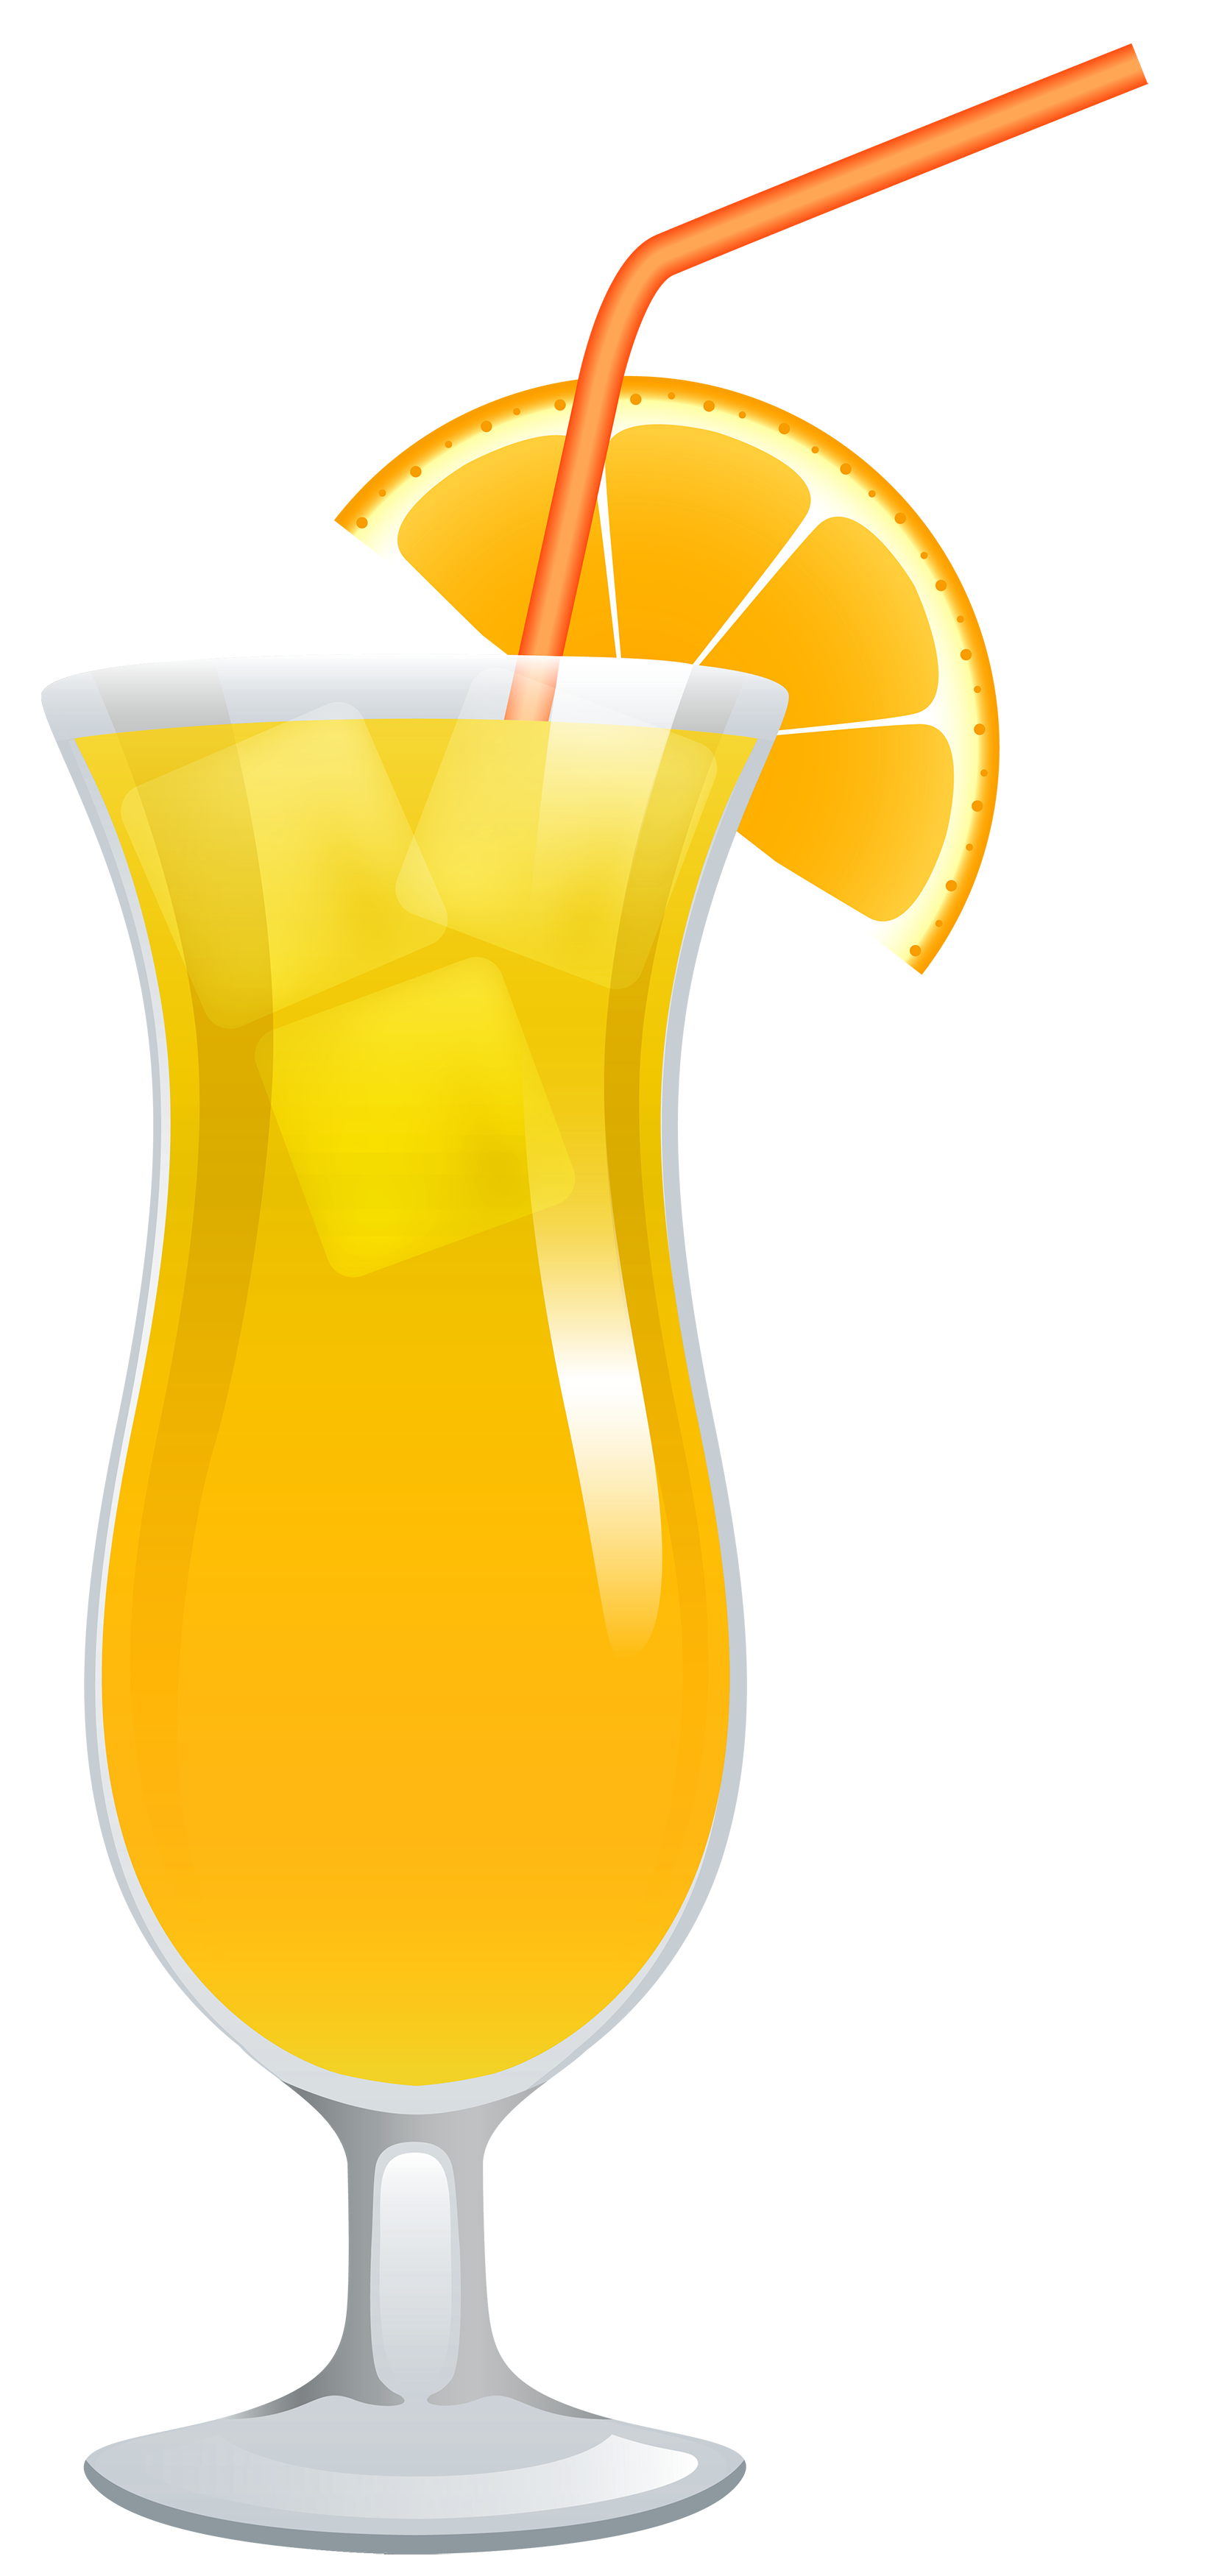 Sun with a drink clipart vector Cocktail PNG images free download vector